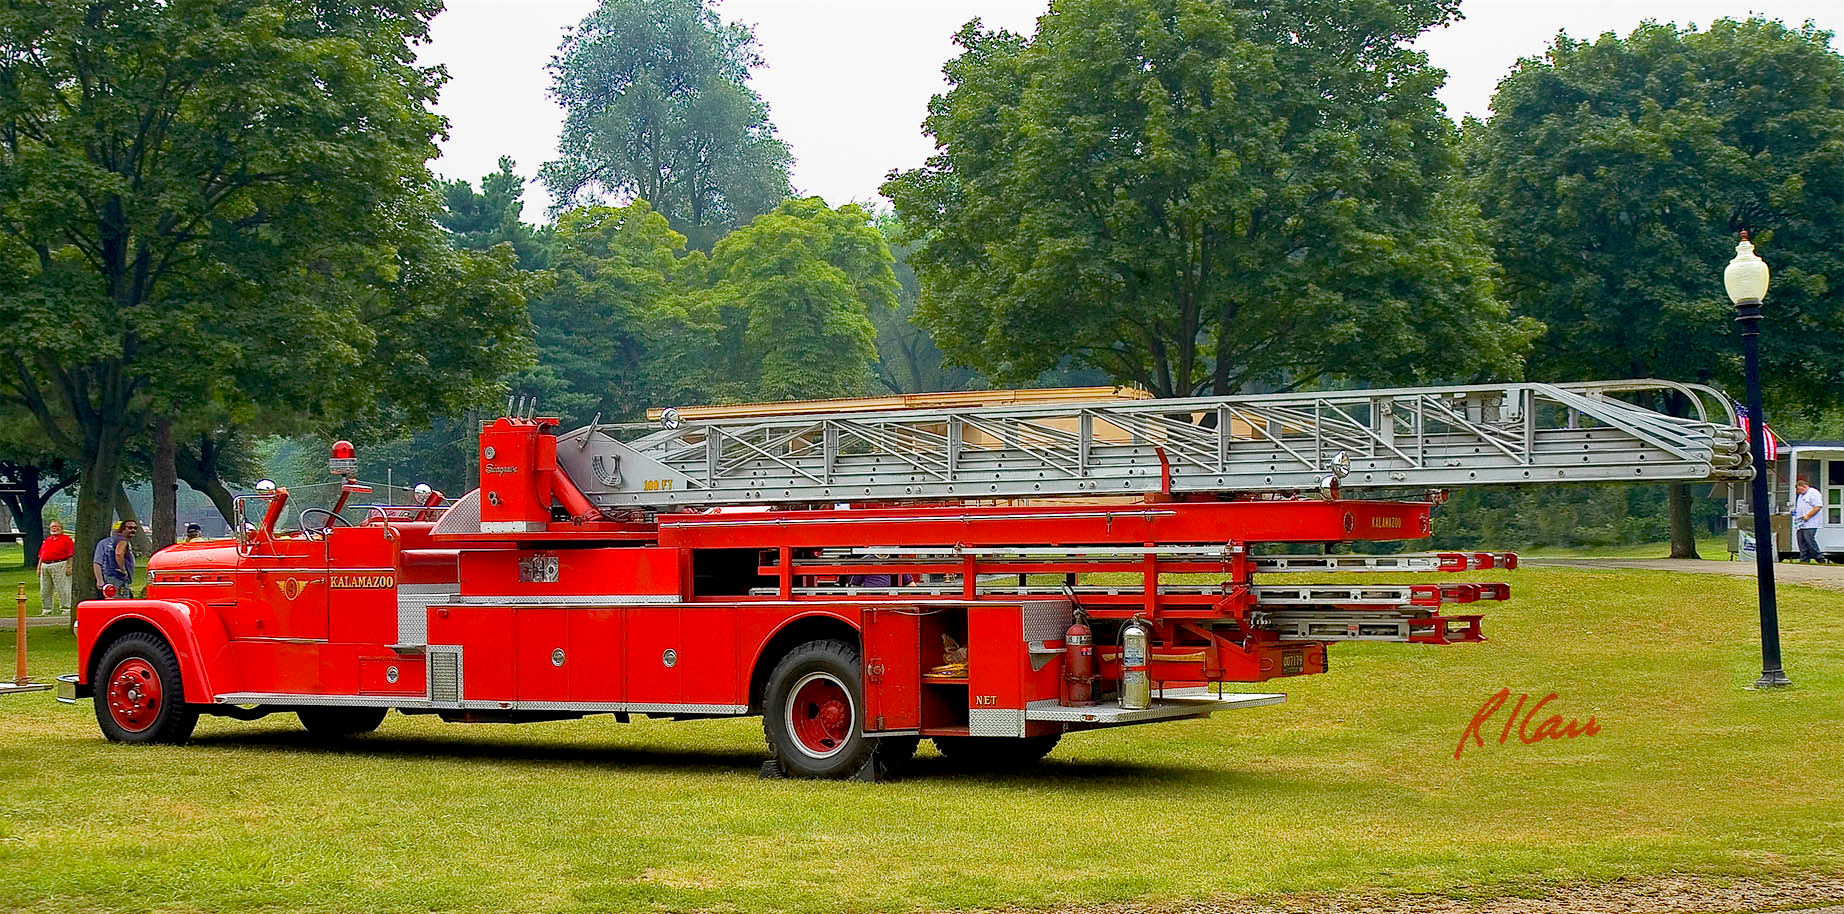 Fire engines, trucks, apparatus, historical: Seagrave 100 foot height aerial fire truck, circa early 1960s,  Kalamazoo, Michigan Fire Department. Fire apparatus Muster, Riverside Park, Ypsilanti, Michigan August 26, 2006